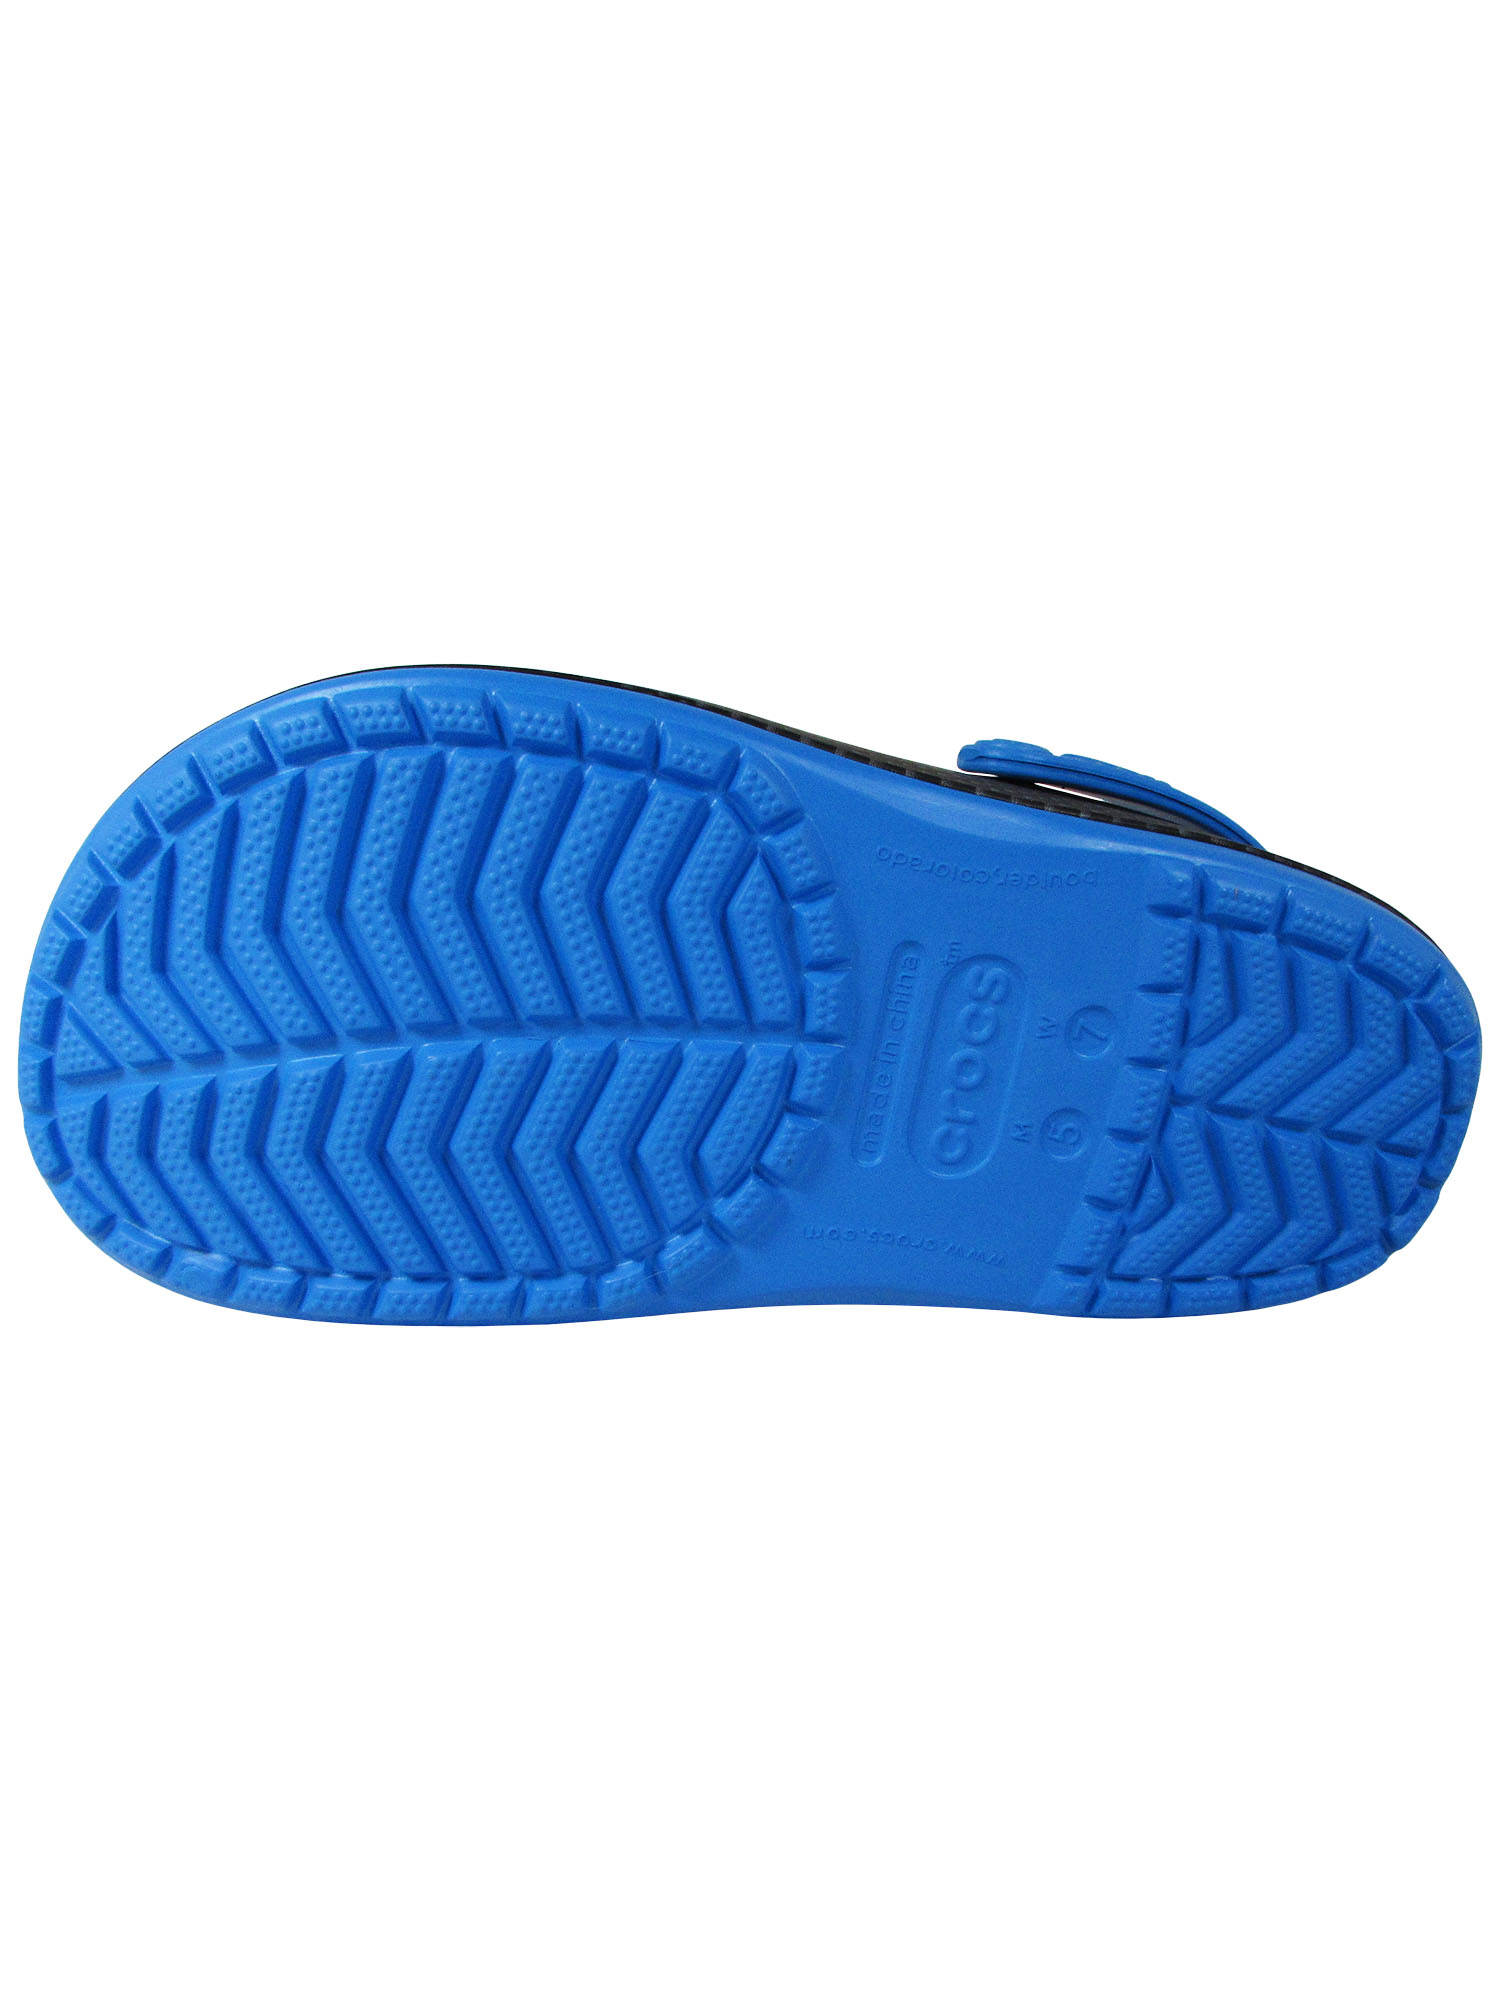 Crocs-Crocband-Carbon-Graphic-Clog thumbnail 3